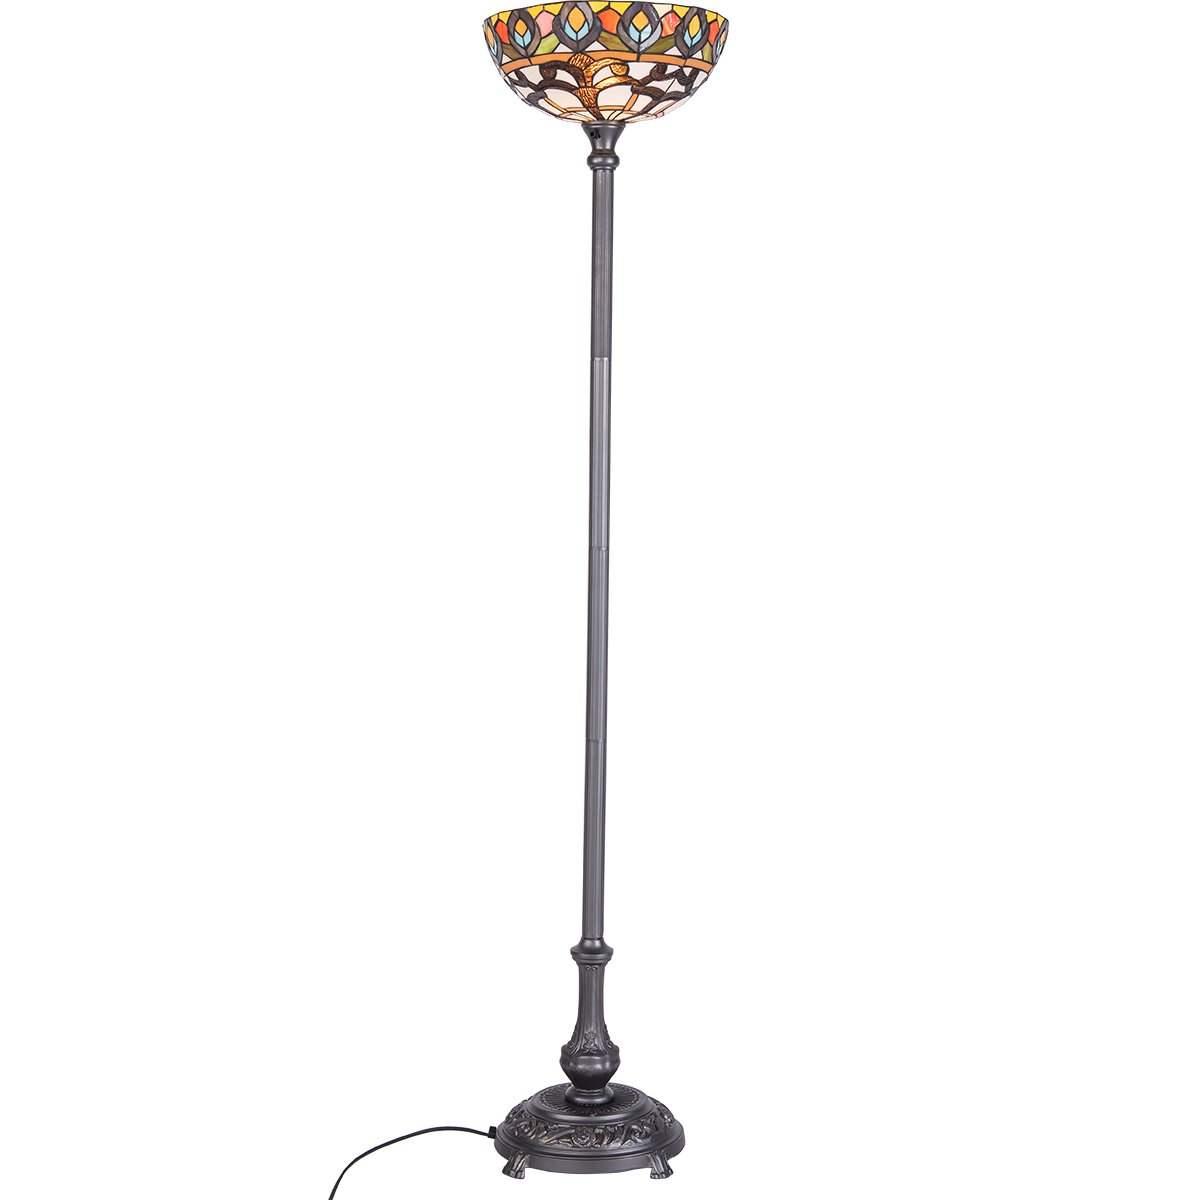 QIRUI Tiffany style Retro Floor Lamp with Stained Glass Shade-8805